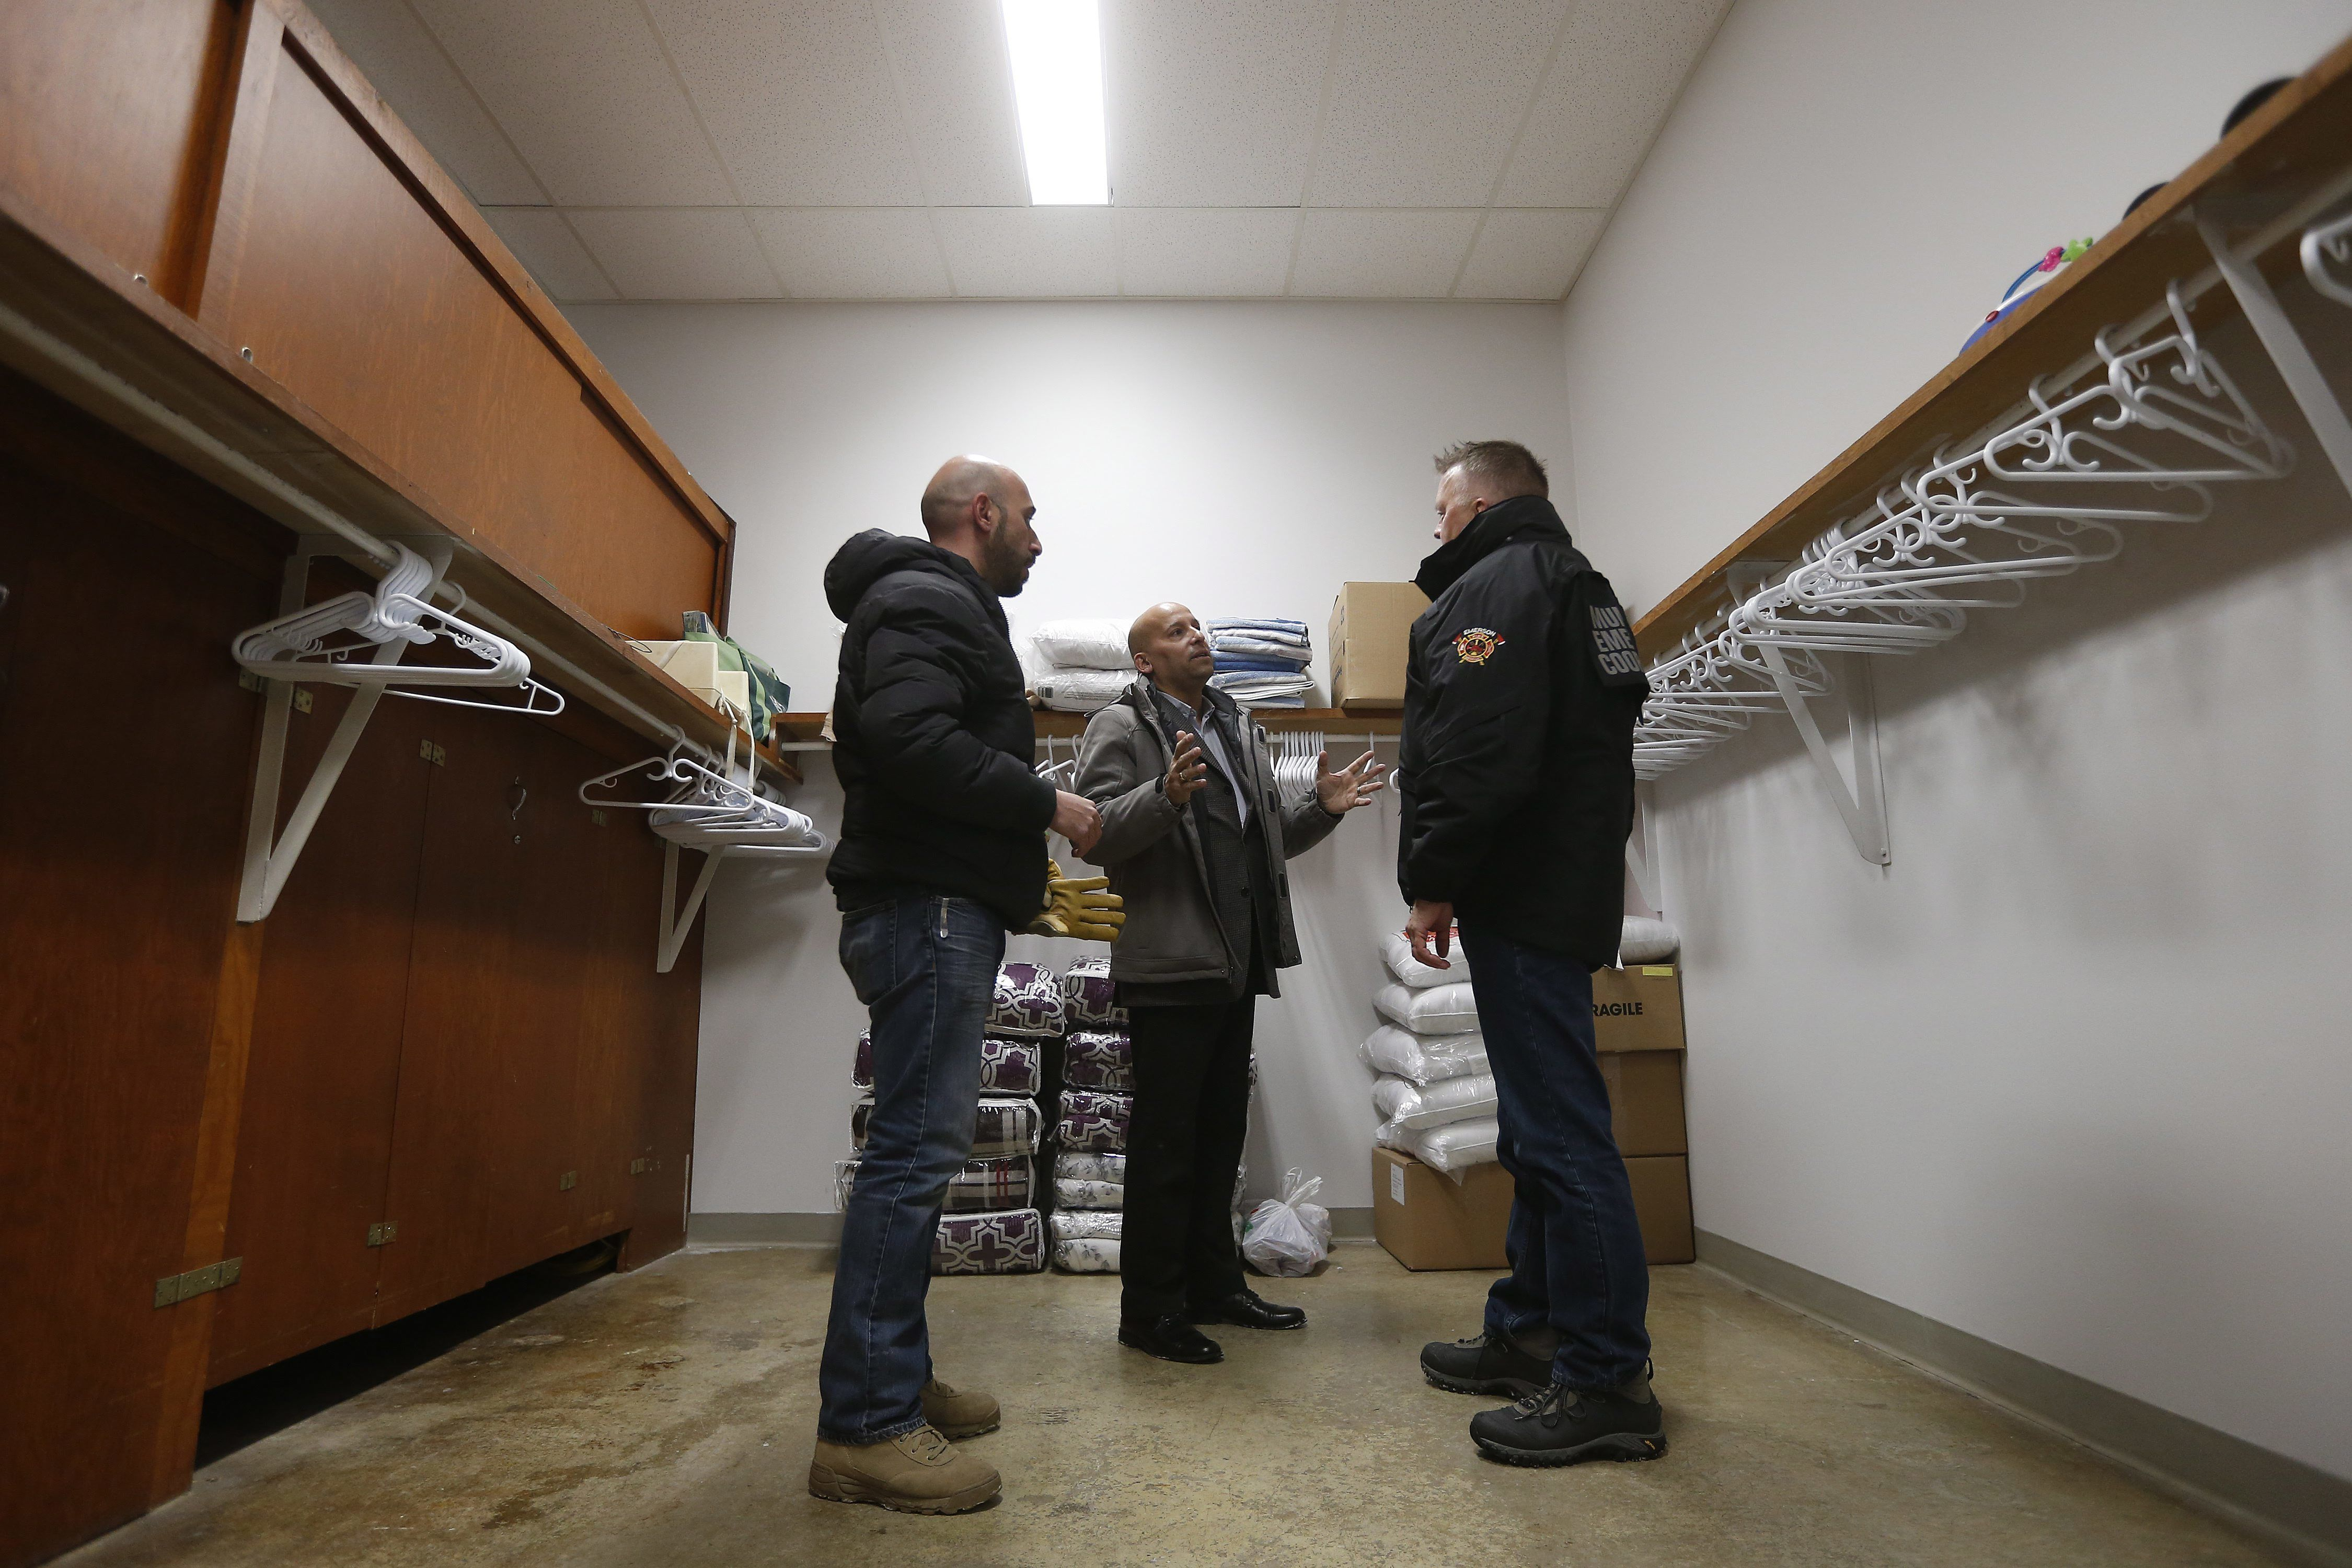 From left, Fadel Alshawwa, Jean Pierre Venegas, Manager of the Manitoba Interfaith Immigration Council, and Bill Spanjer, Municipal Emergency Coordinator for Emerson-Franklin bring blankets and pillows into a community hall for refugees that may walk across the border in Emerson, Manitoba, Thursday, Feb. 9, 2016. Refugees have been crossing into Canada at Emerson and authorities had a town hall meeting in Emerson to discuss their options. (John Woods/The Canadian Press via AP)